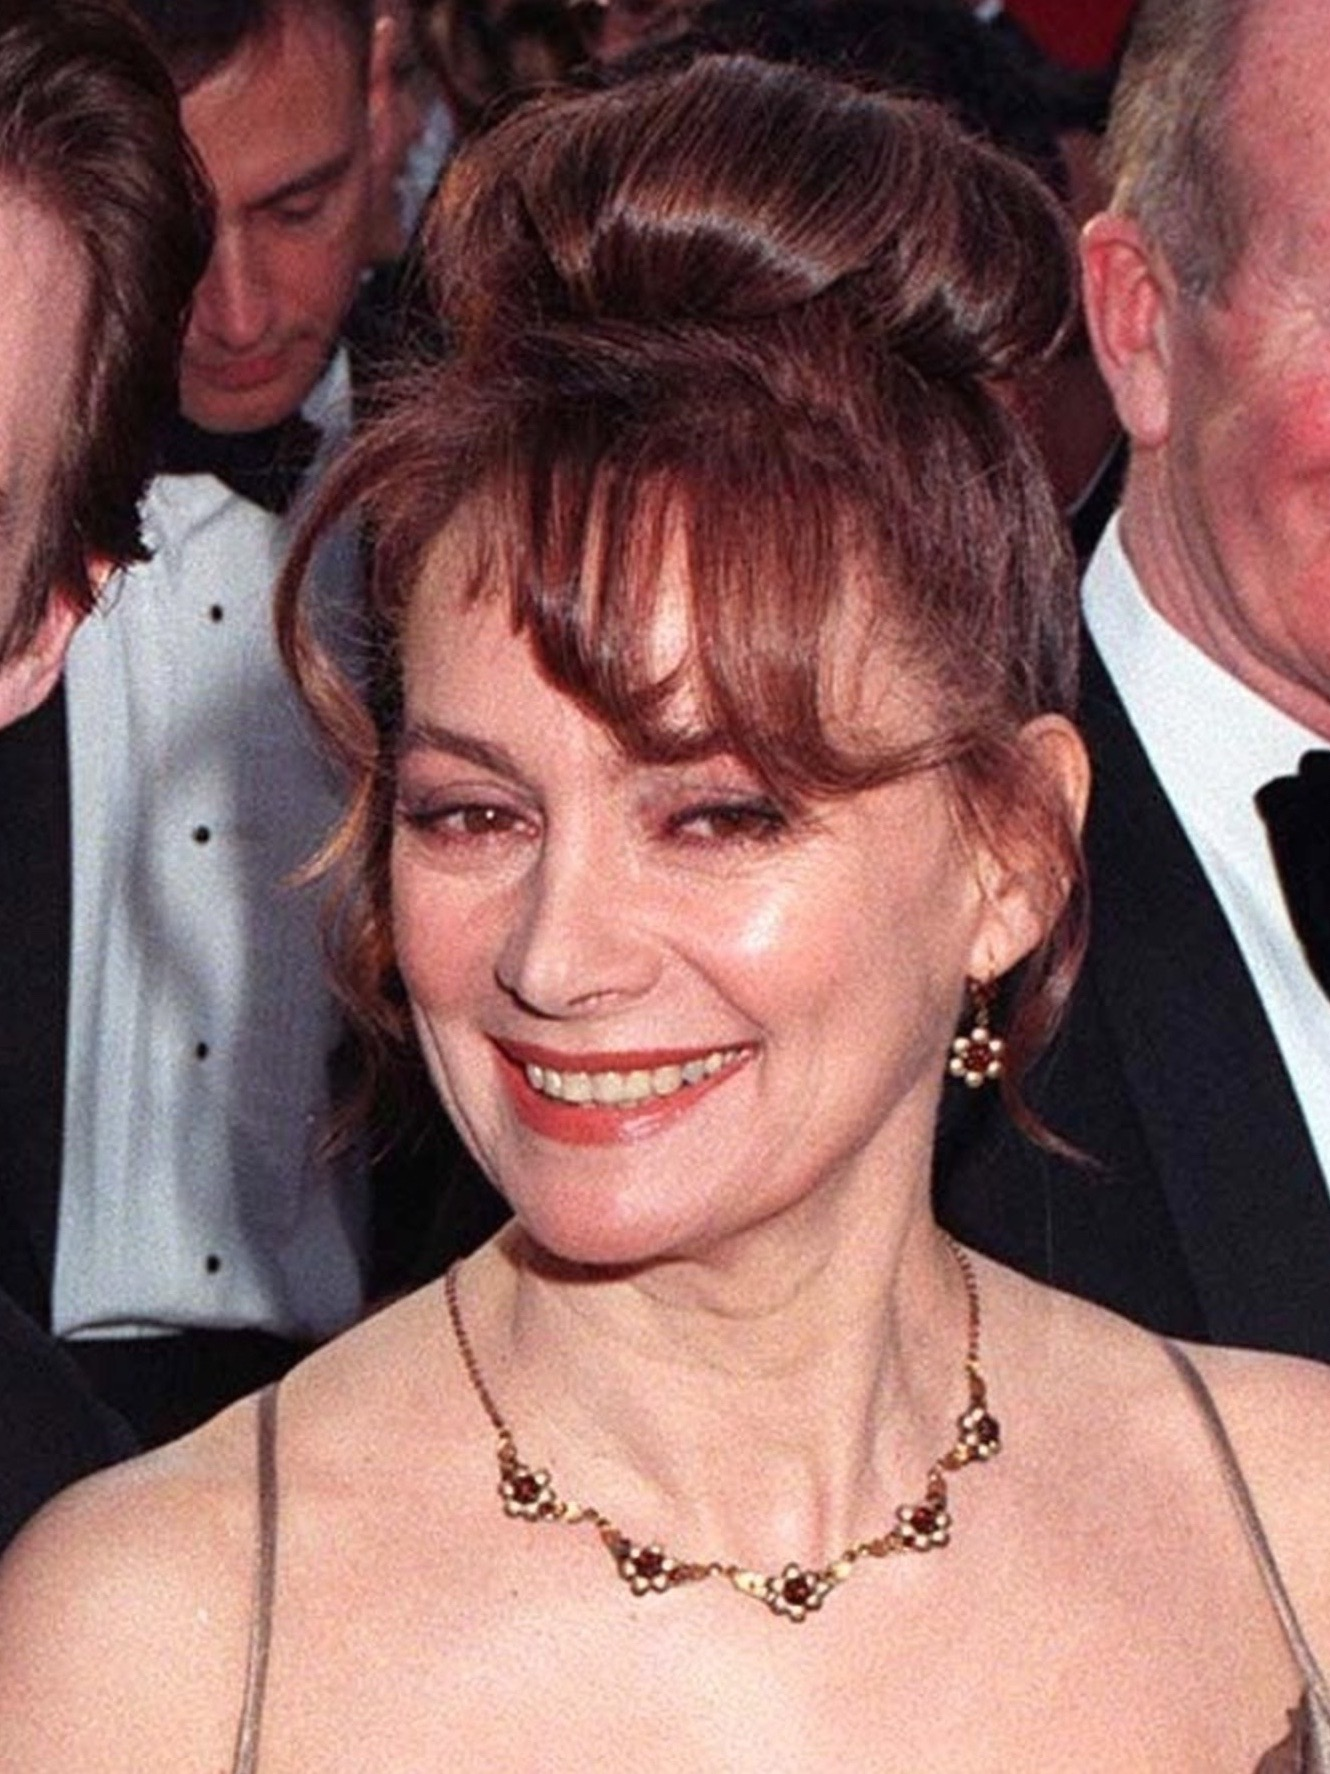 Francesca Annis (born 1945) nudes (54 photo), Sexy, Paparazzi, Feet, cameltoe 2018